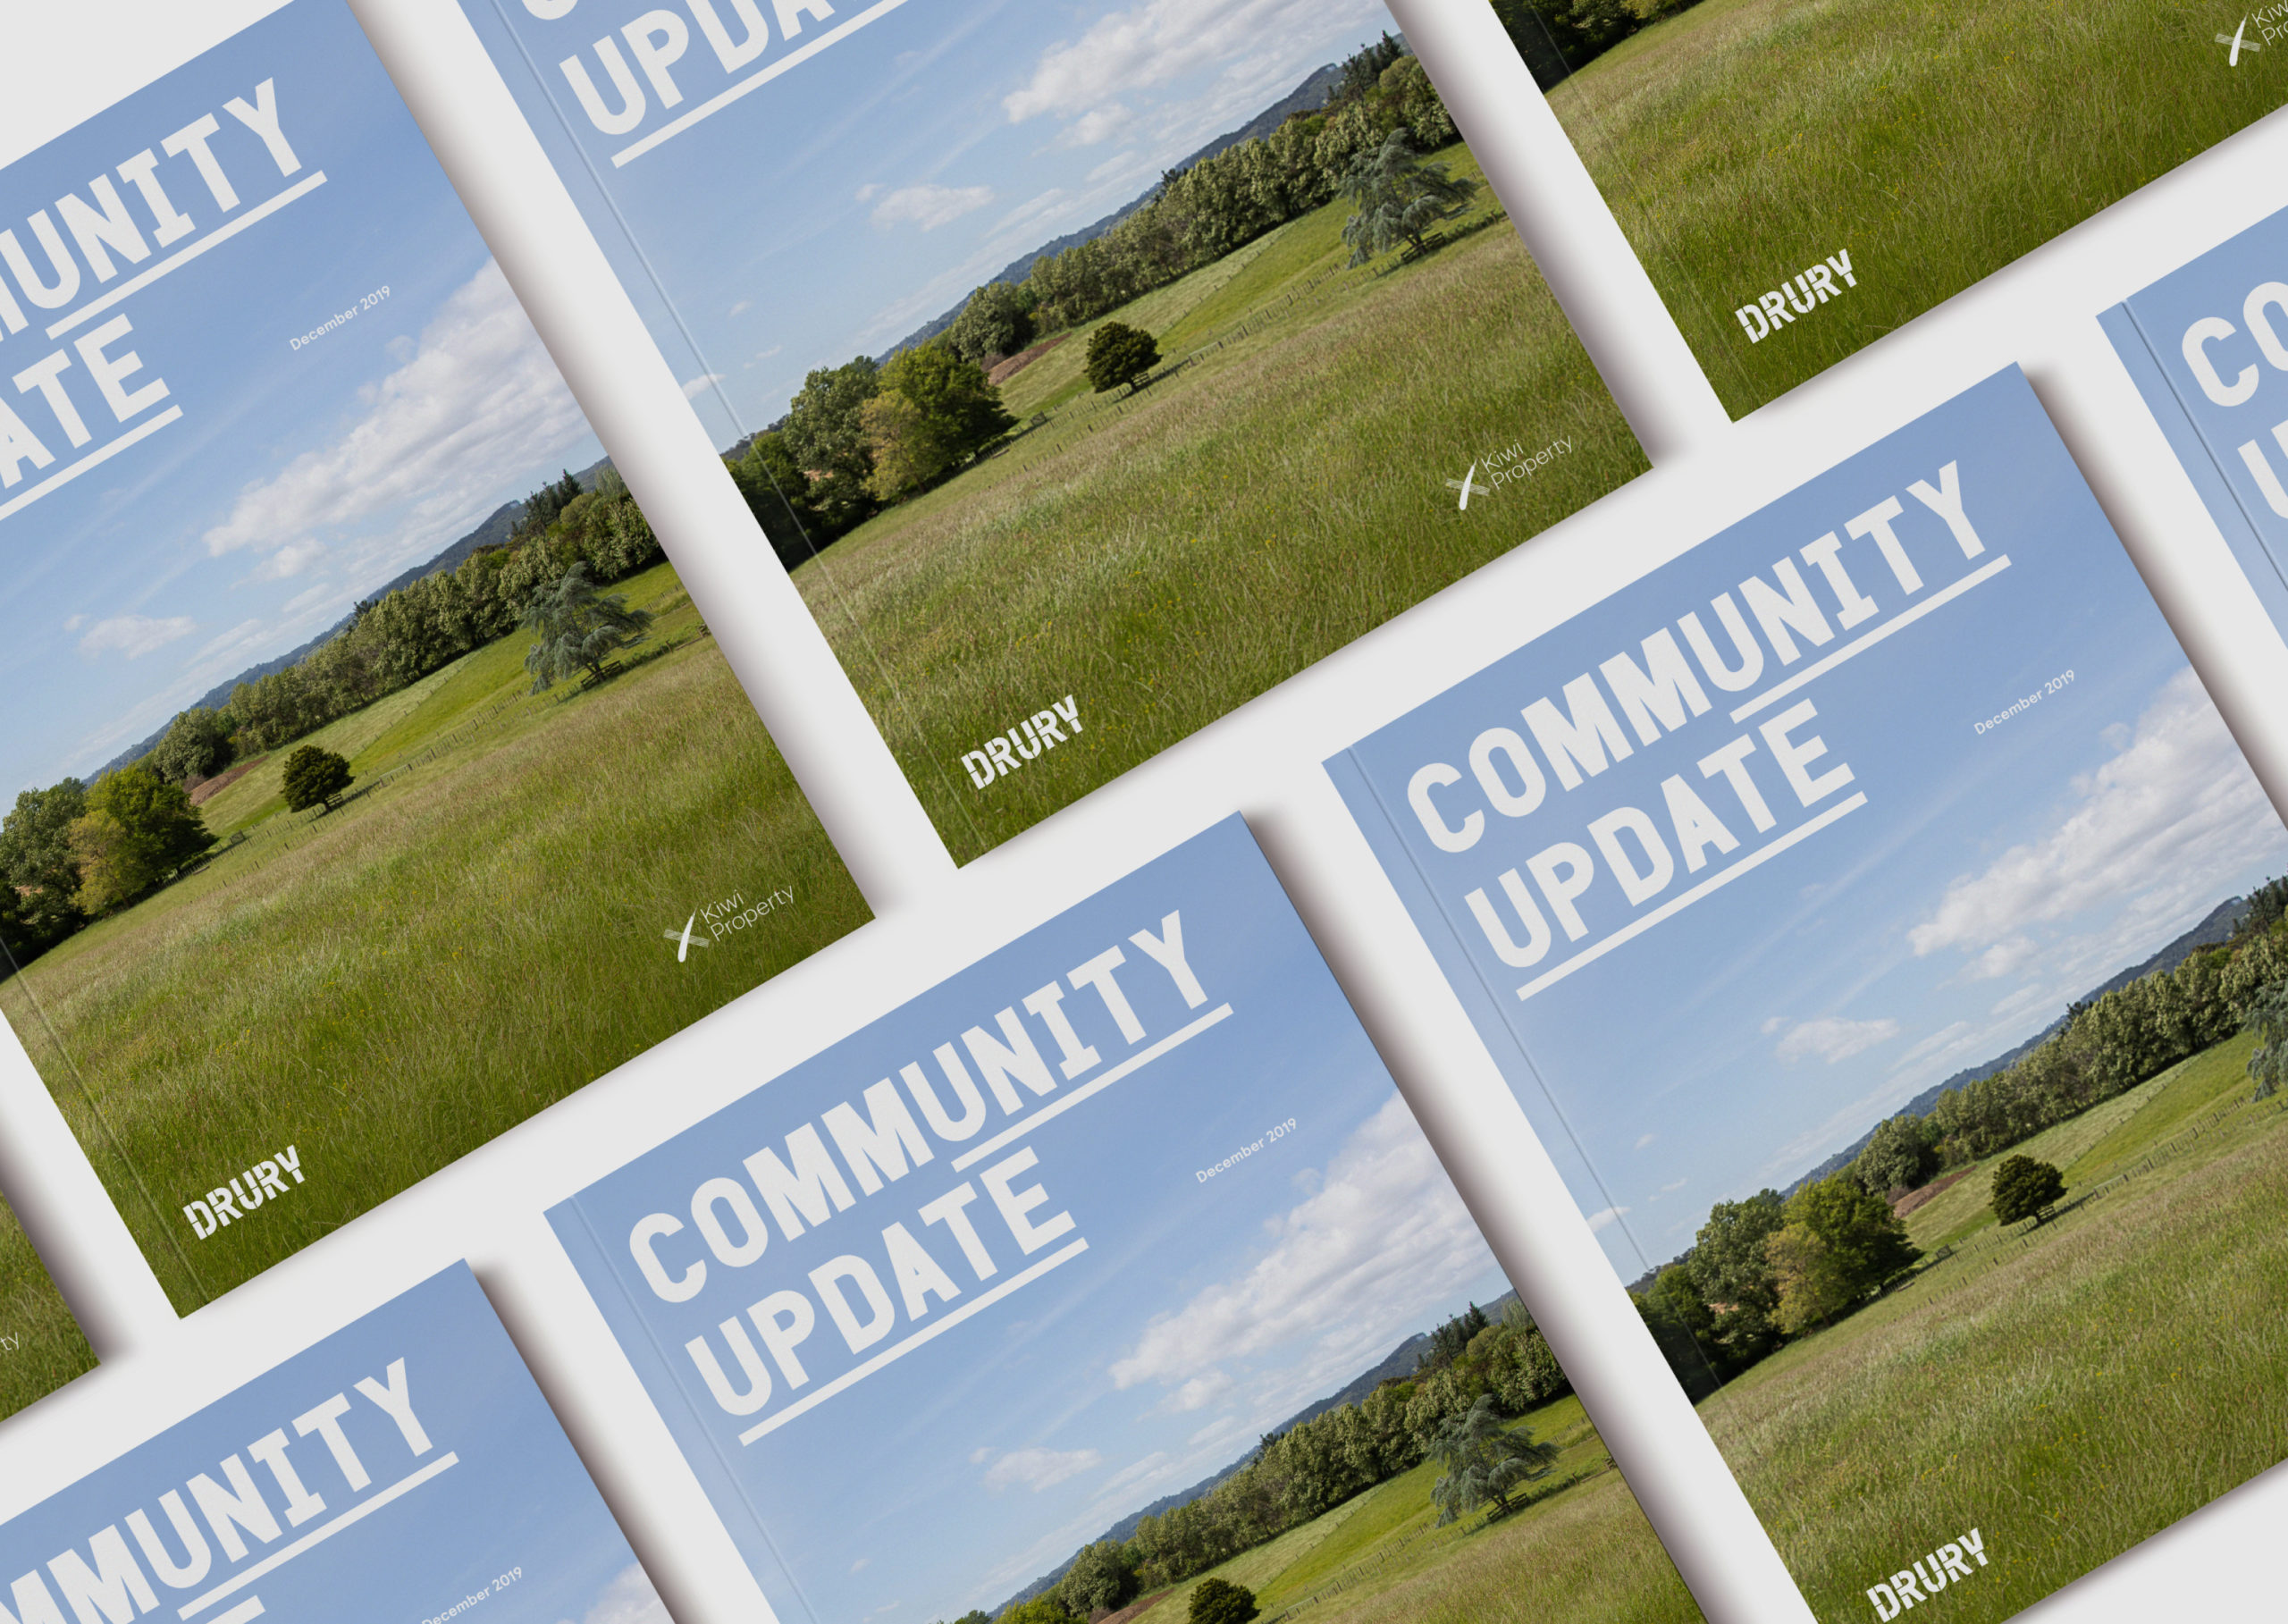 A multiple layout of Drury development communications Brochure covers, all featuring idyllic green pasture